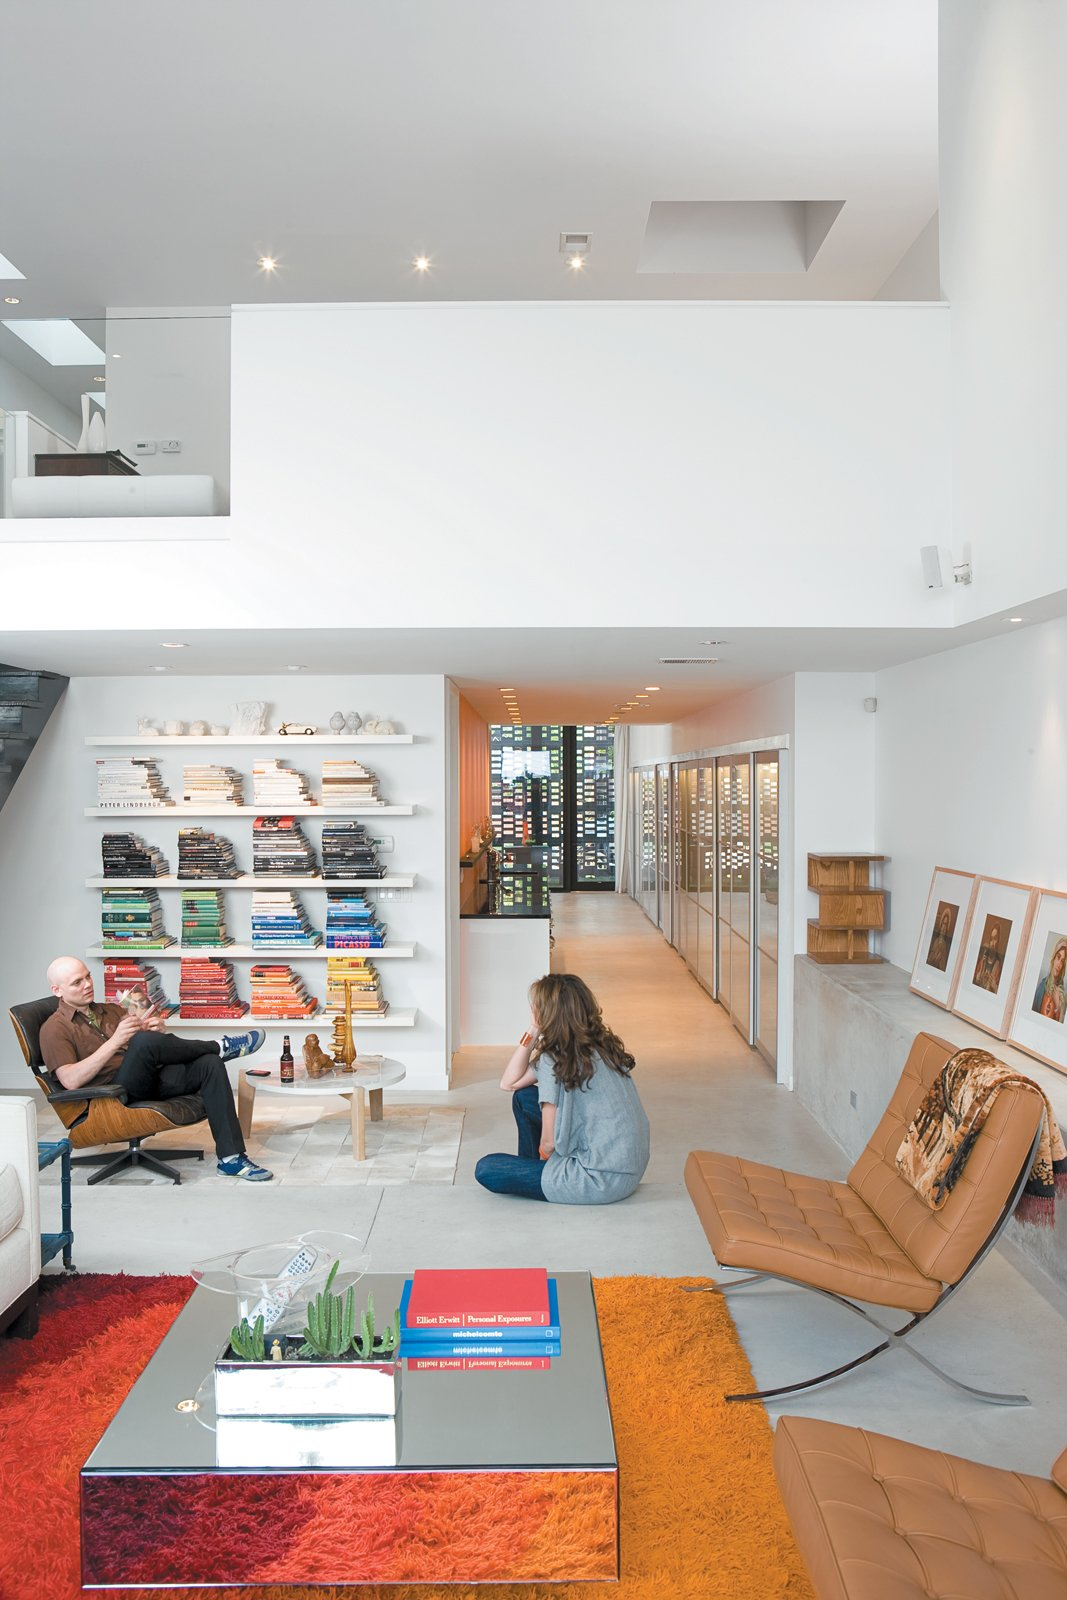 Since Dwell last visited the couple, they now have a daughter and one chair in particular is in constant competition.  Hallways That Impress by Ethan Lance from This is How You Combine Modern Architecture, Flea Market Finds, and Art All Together